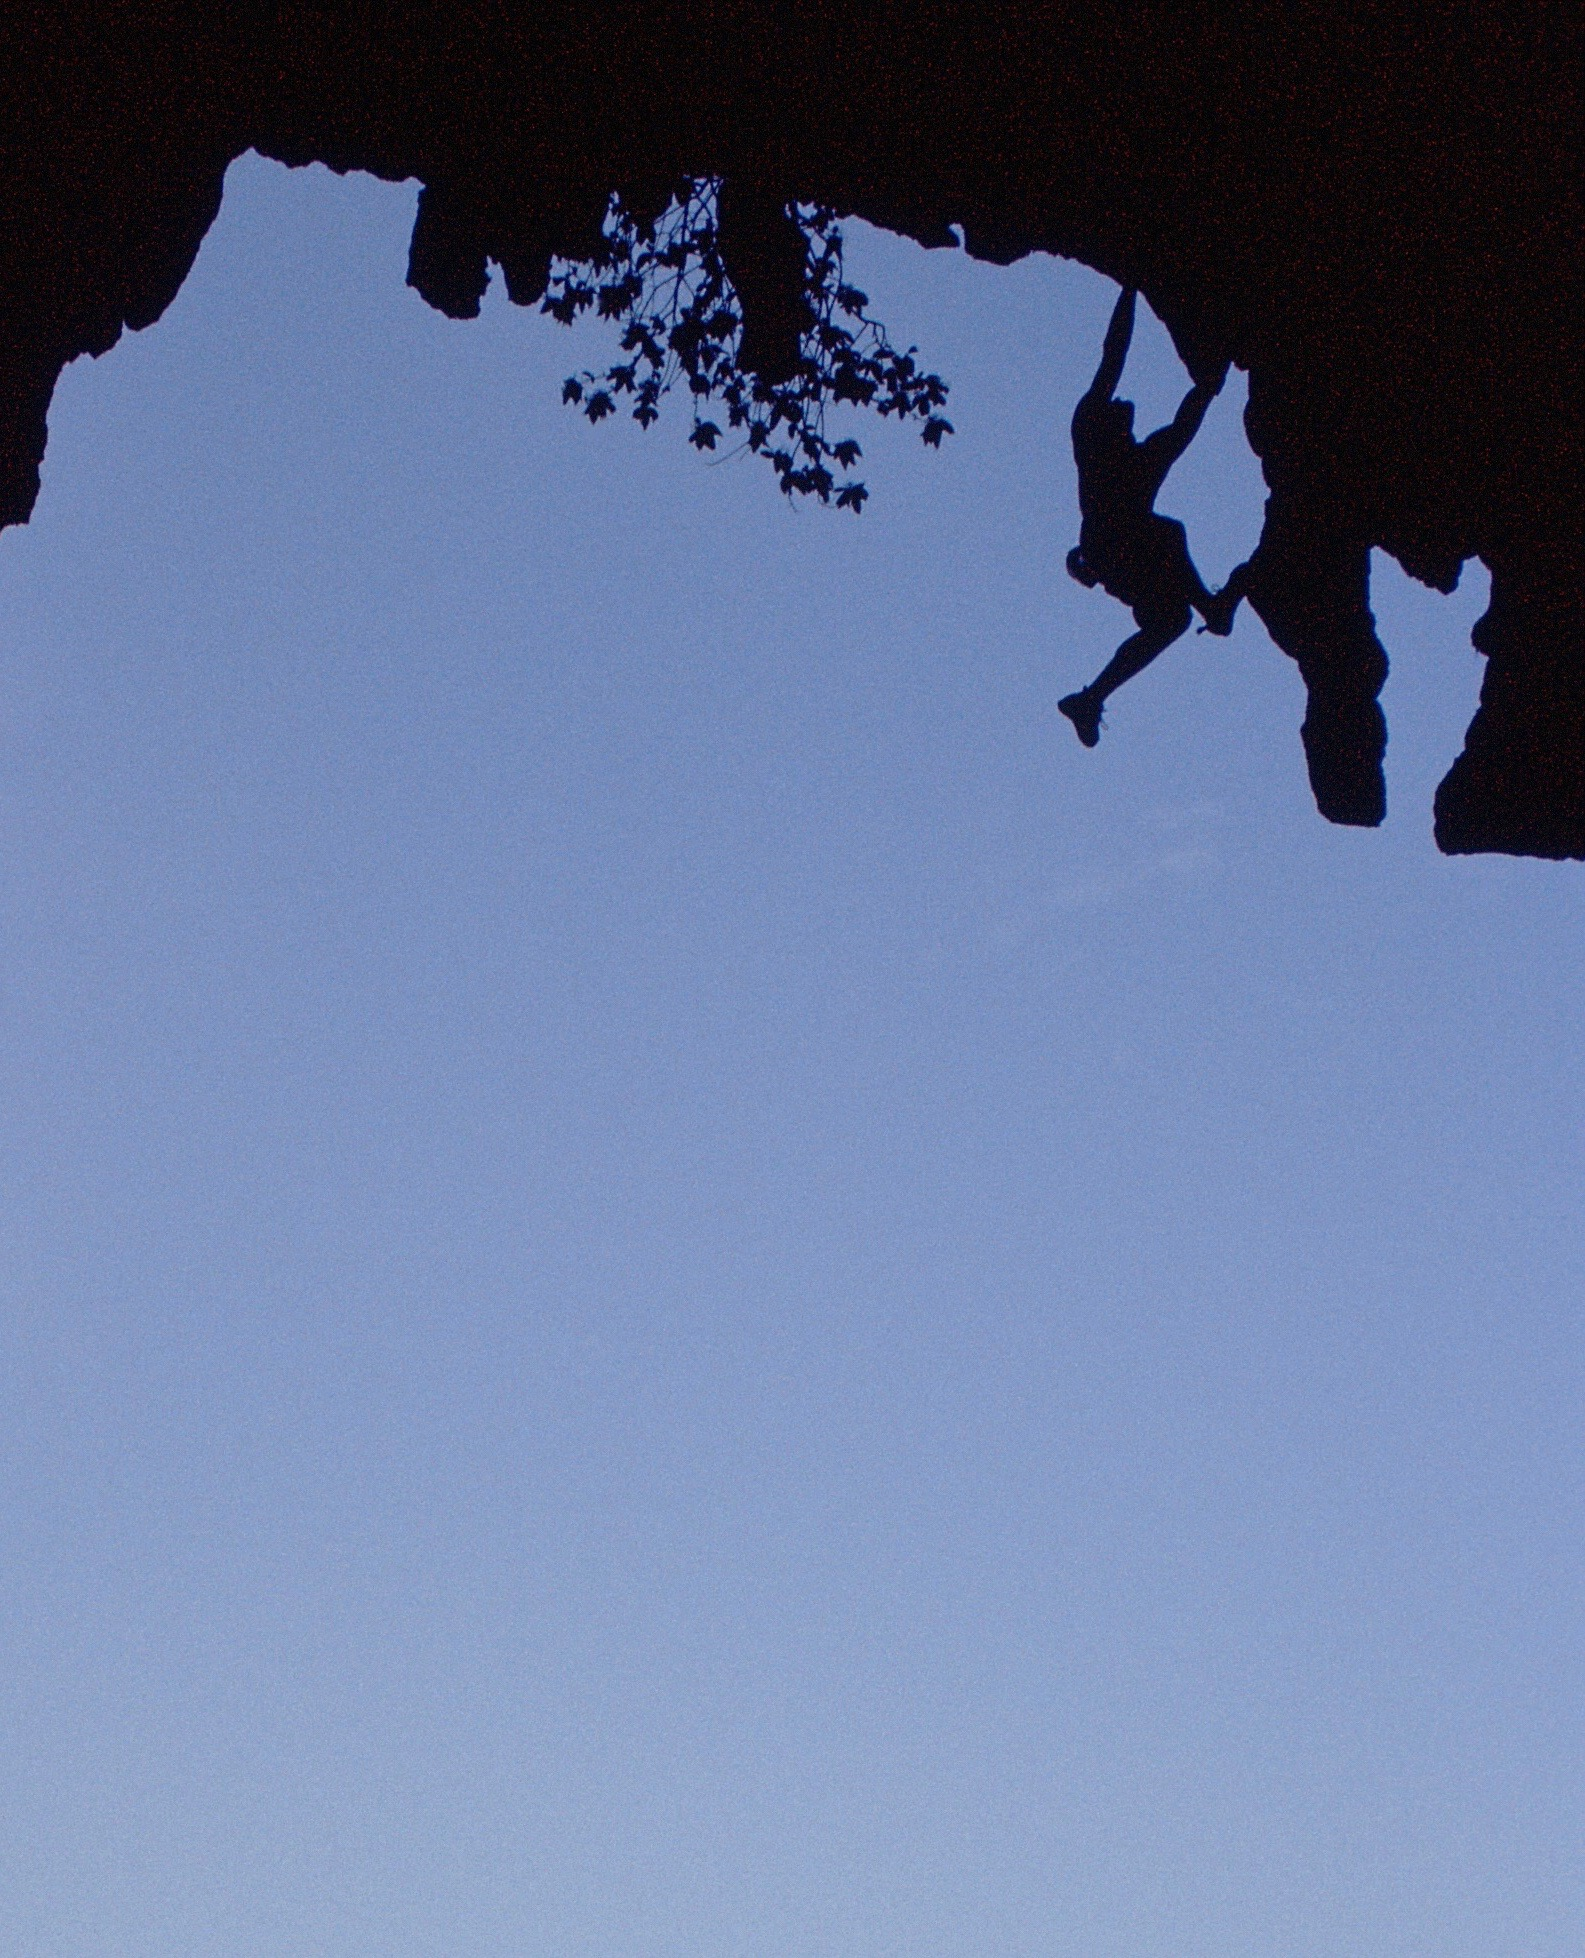 Halong Nights 7a+. First ascent in 2003.  Photo: Gresham collection.